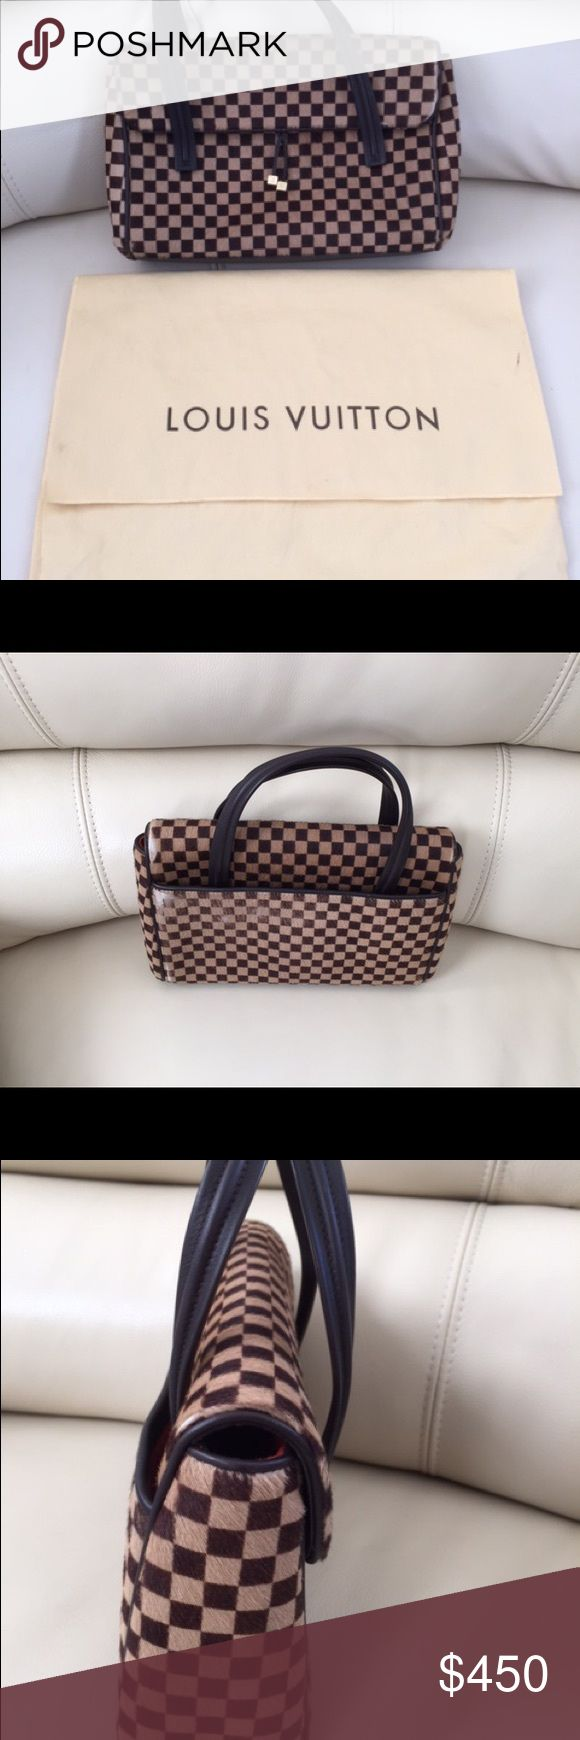 Louis Vuitton sauvage Lionne Spawn Fur Brown Louis Vuitton  PARIS Sauvage Lionne Spawn Fur brown Tan Damier Satchel. Minor fading back of purse it can be simply dyed/traced with color pen. Inside is in red Alkantra lining with 1 open poket. Made in Italy Louis Vuitton Bags Satchels